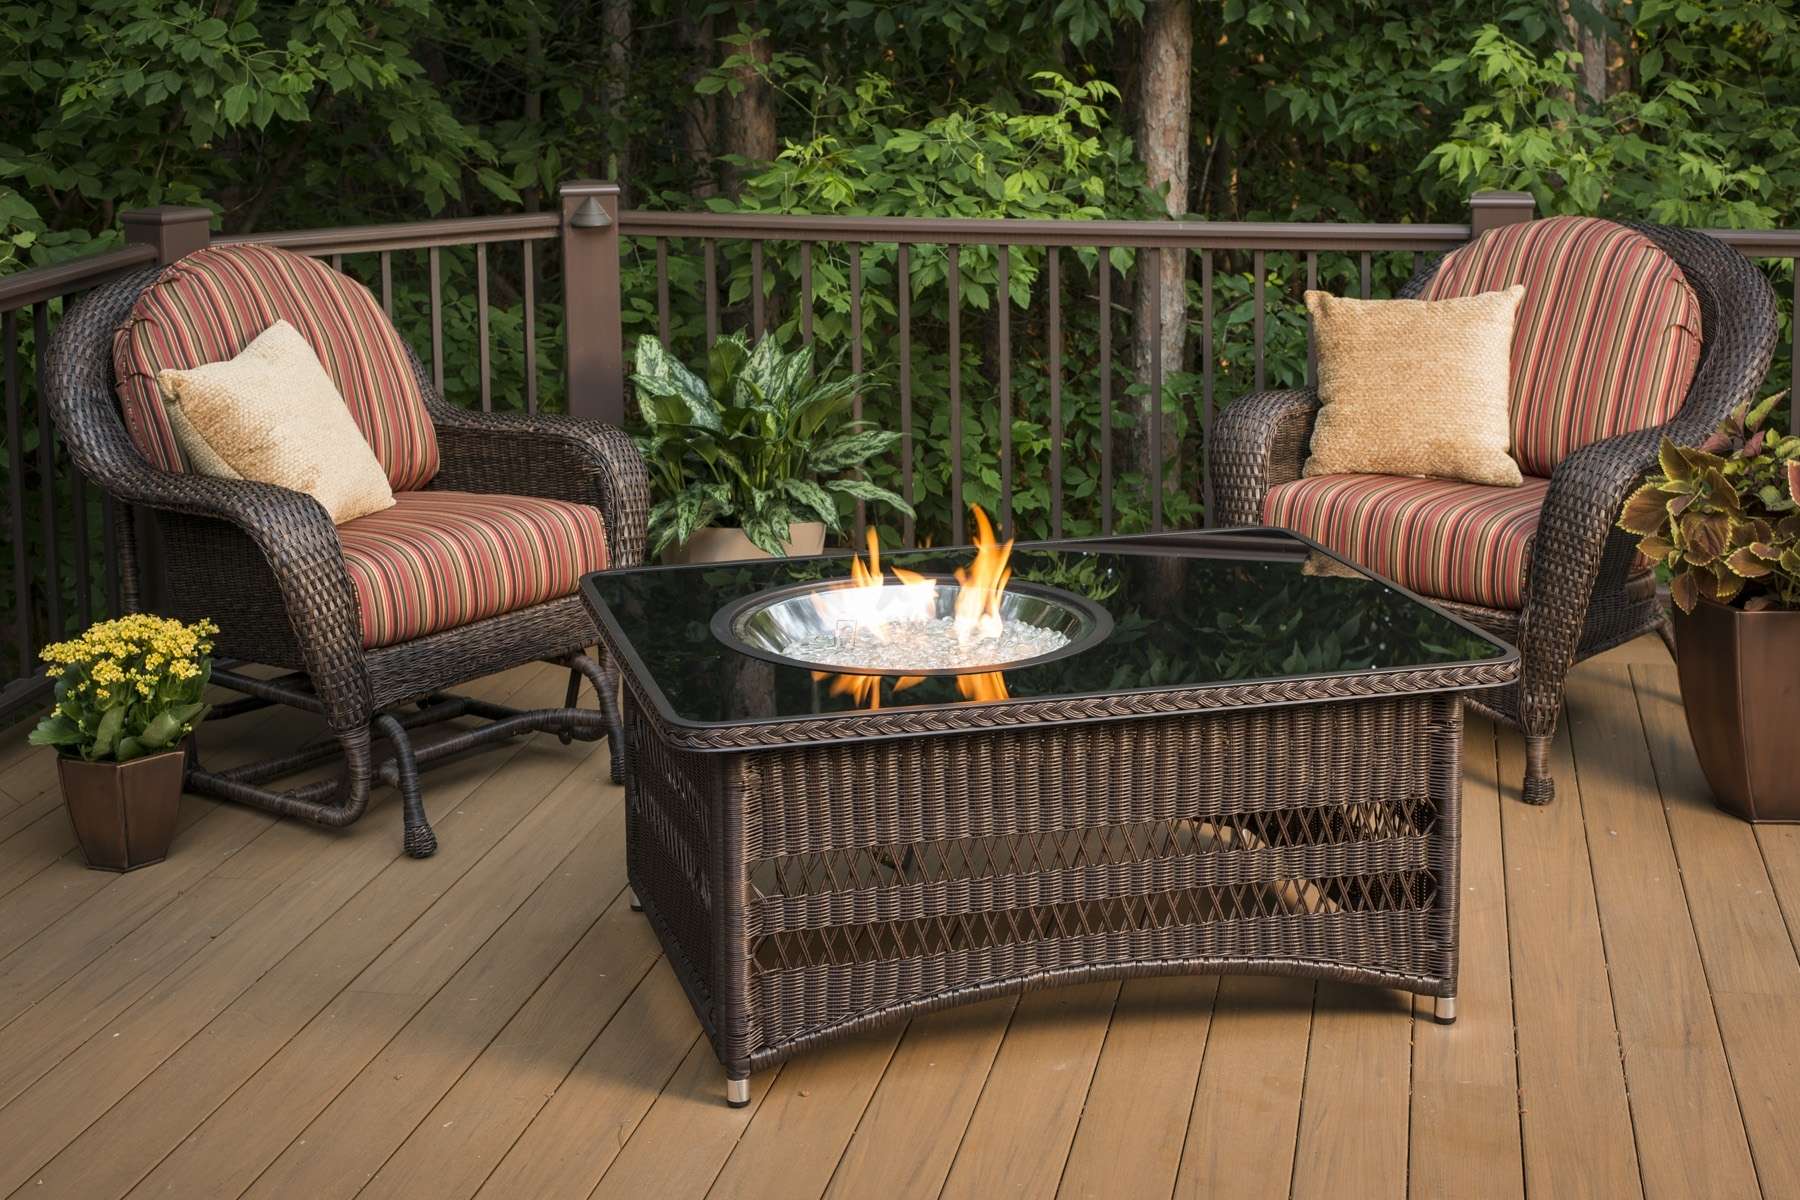 Image of: Outdoor Deck Fire Pit Design And Ideas Pertaining To Outdoor Decks With Fireplaces Outdoor Decks With Fireplaces Ideas